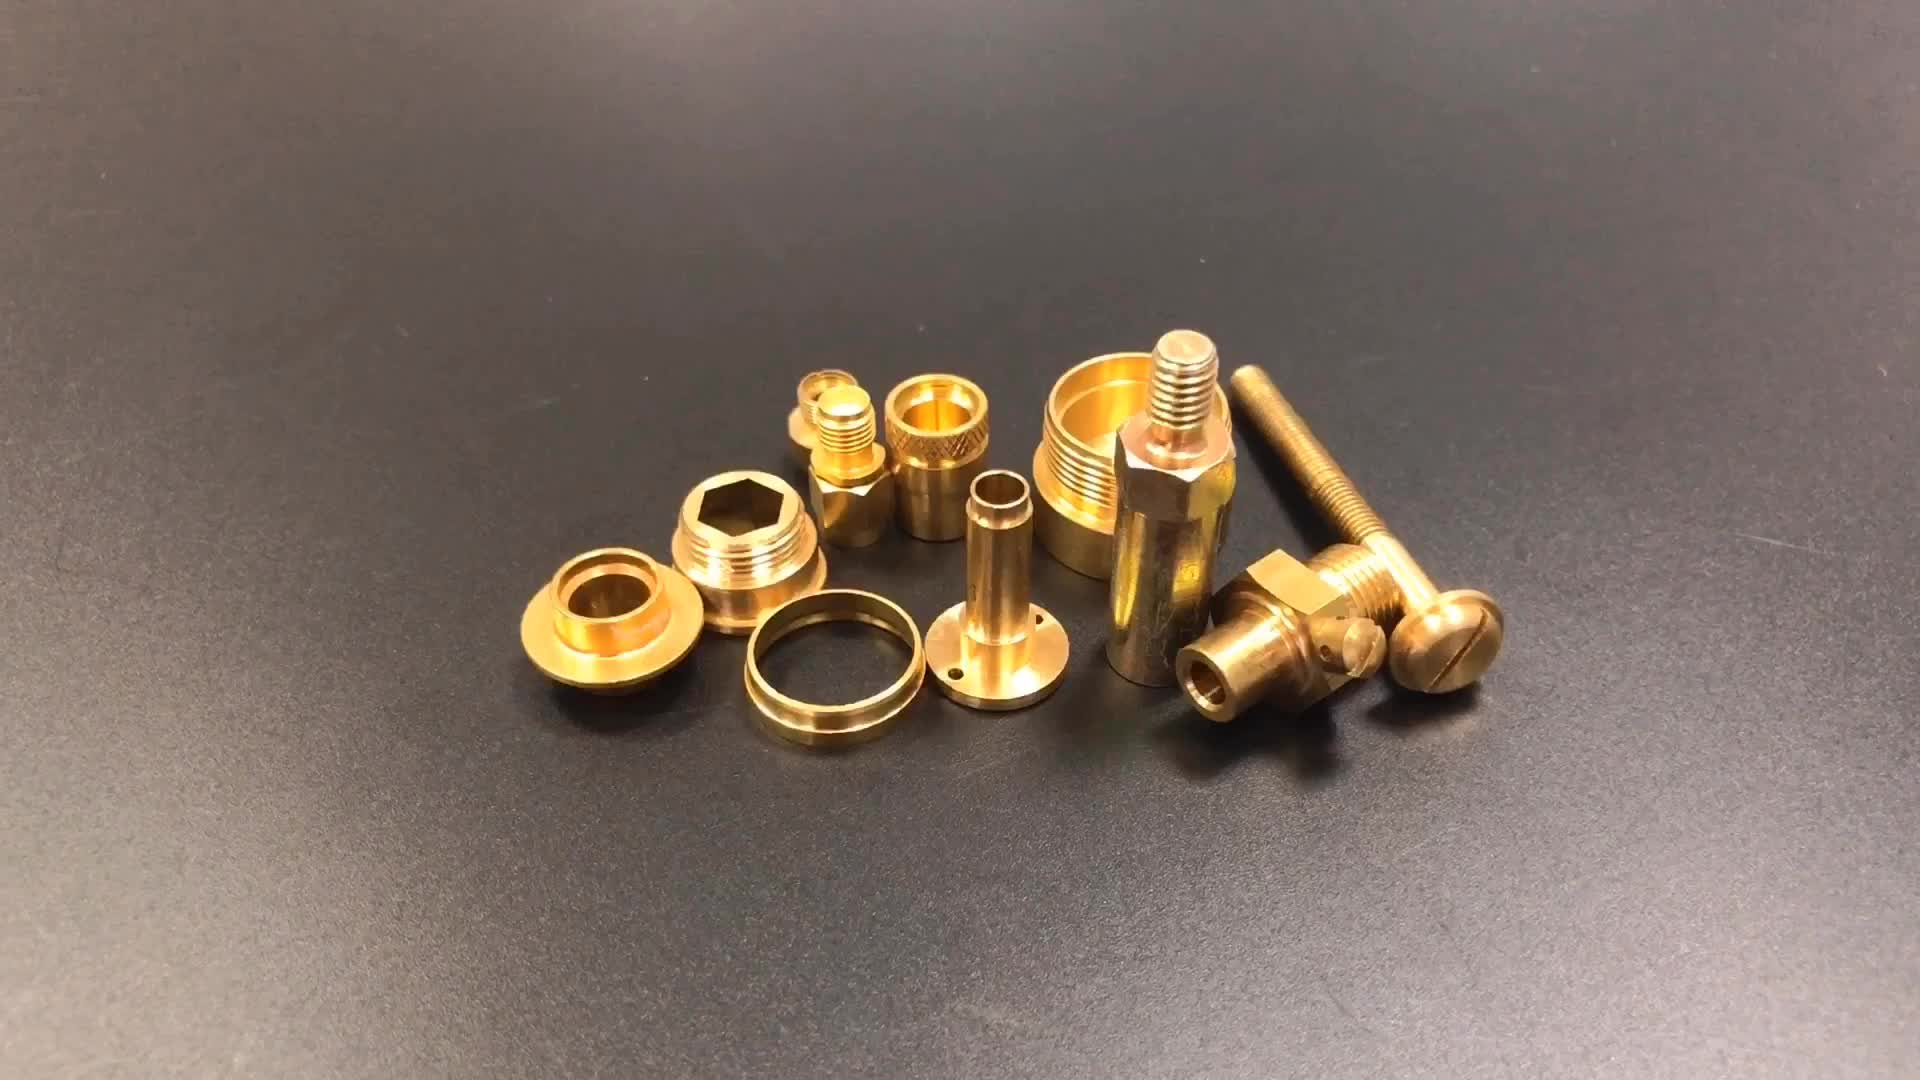 OEM Widely Used Metal End Cap Copper Pipe Threaded End Cap